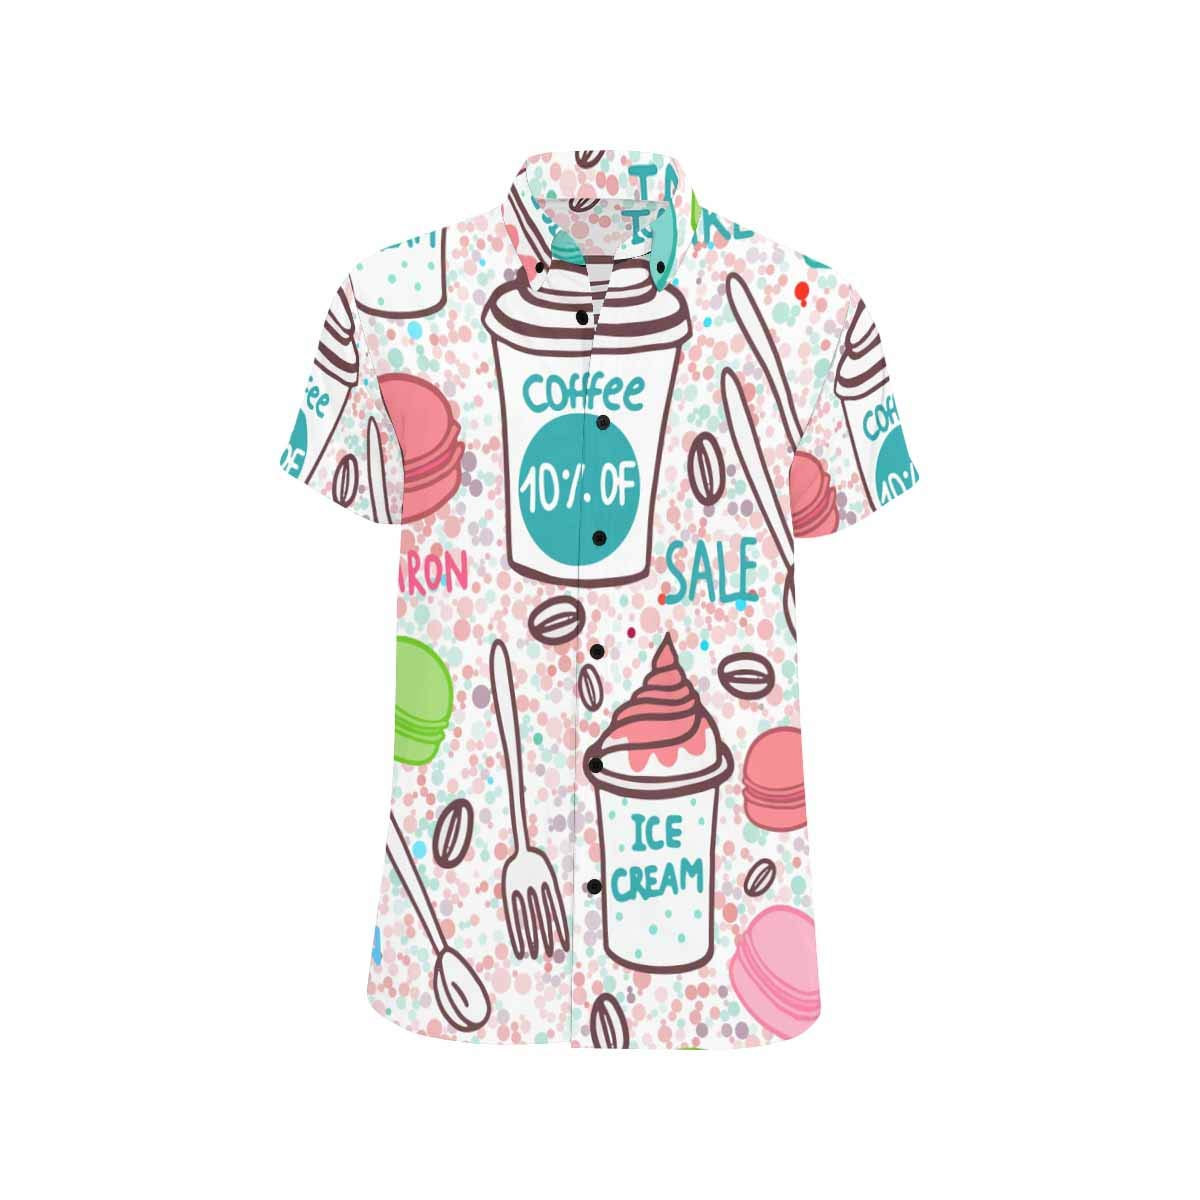 InterestPrint Macaroons Coffee Ice Cream Shirts Summer Short Sleeve Stand Collar Casual T-Shirt Beach Tops for Men